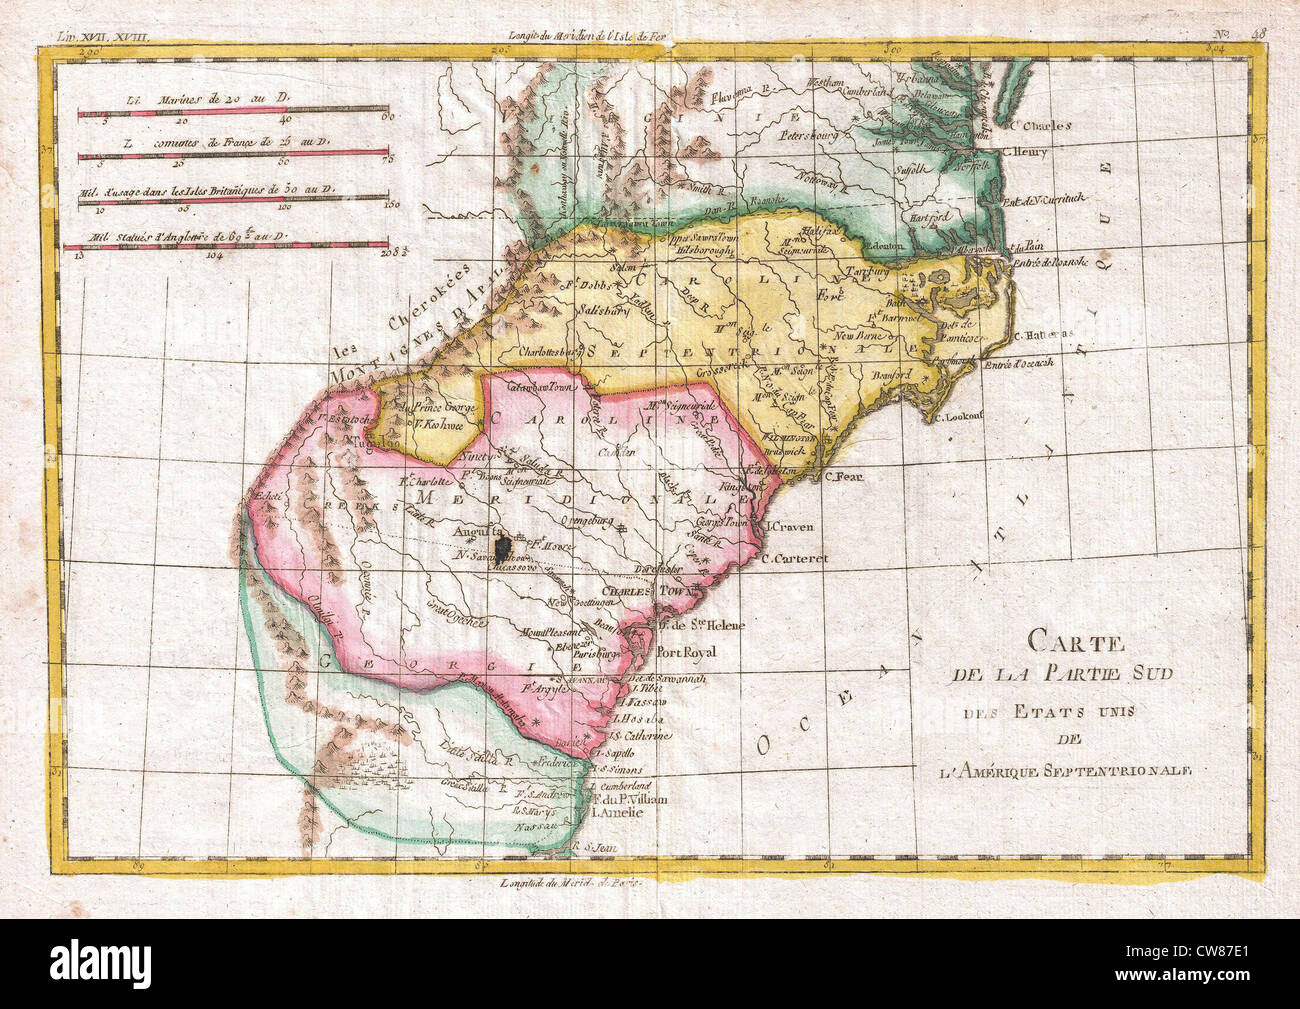 1780 Raynal and Bonne Map of Southern United States Stock Photo ...